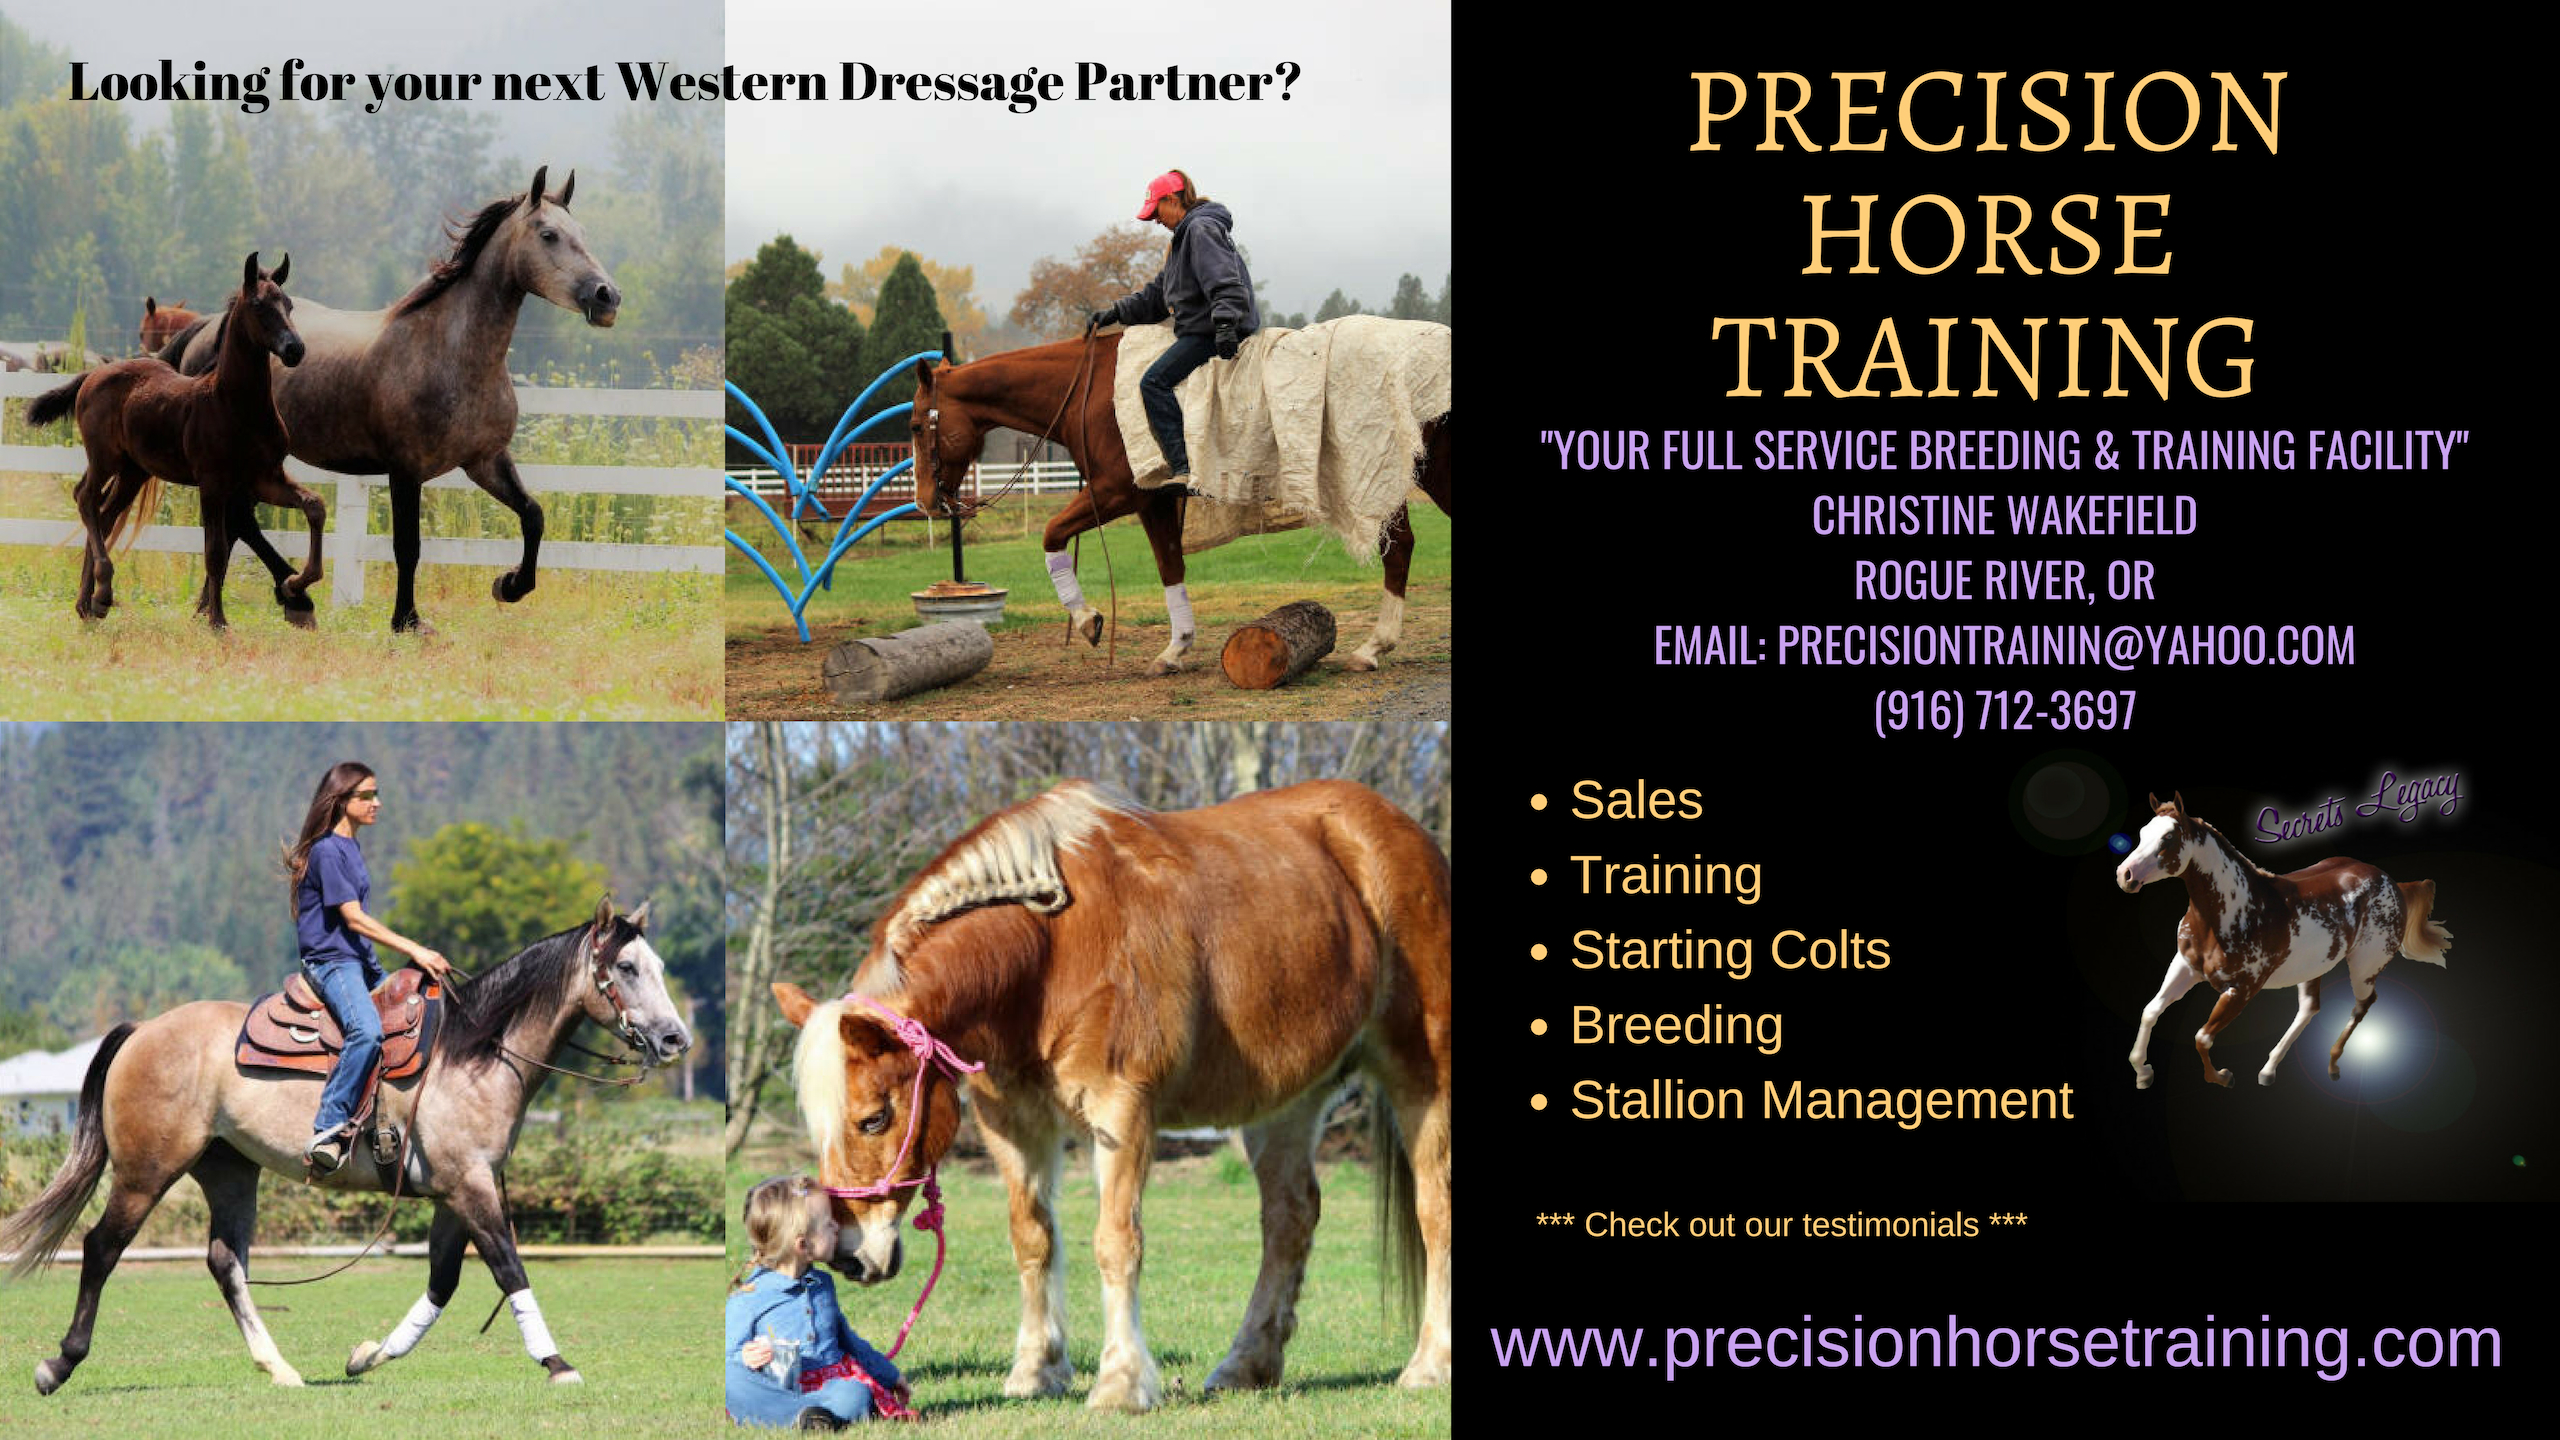 Precision Horse Training